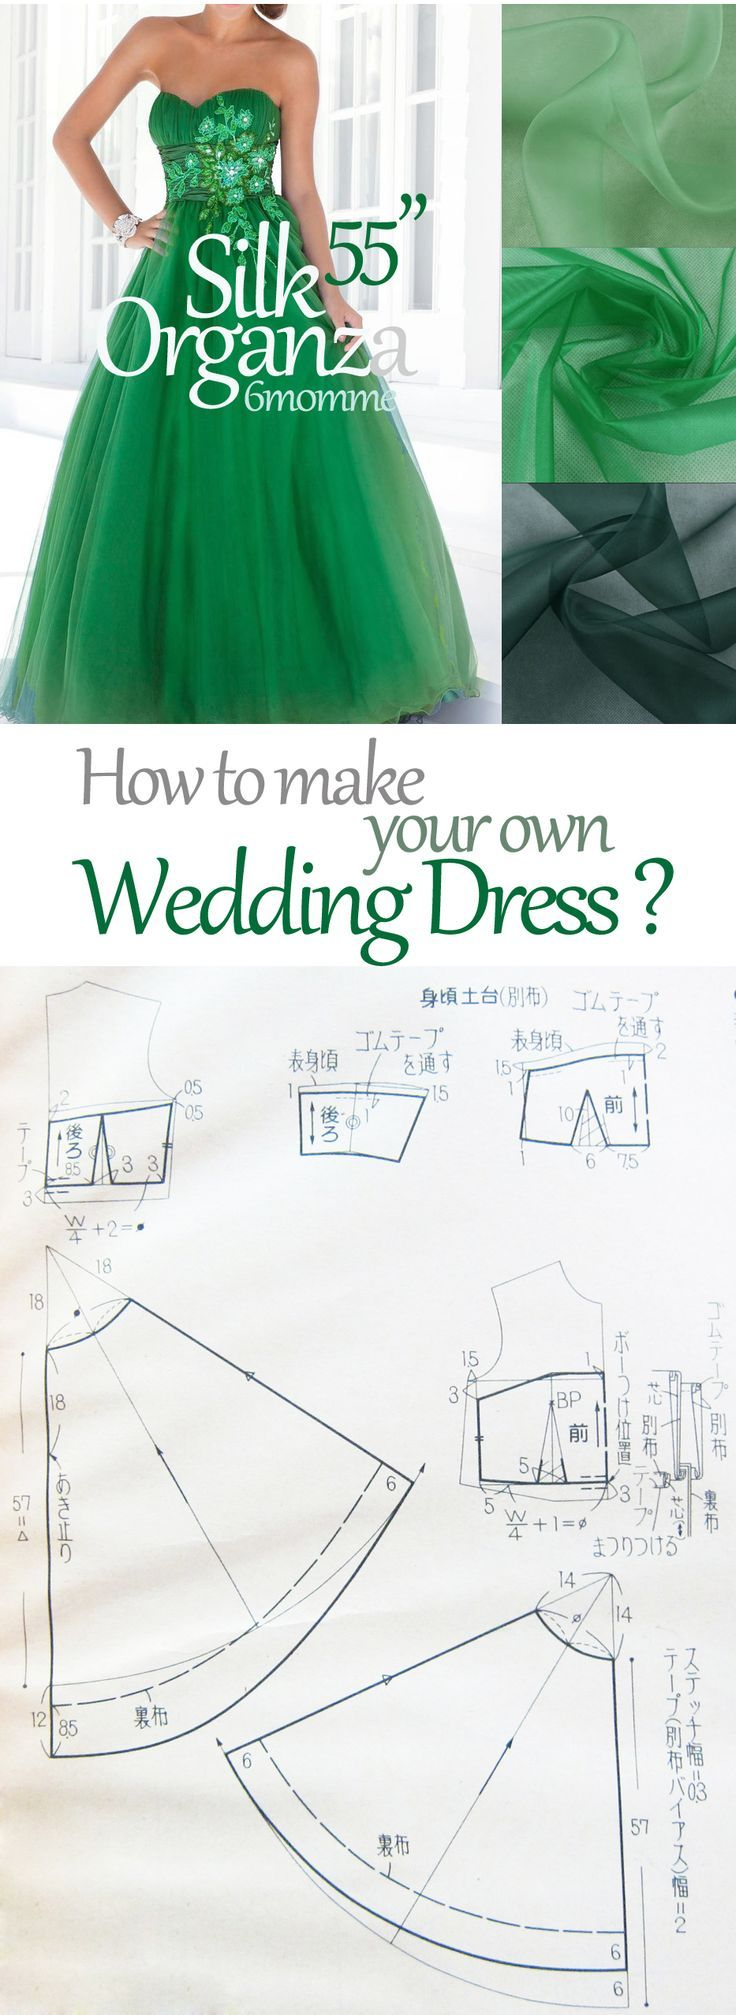 Design your own wedding dress near me  how to sew your own wedding dress DIY wedding dress pattern Free